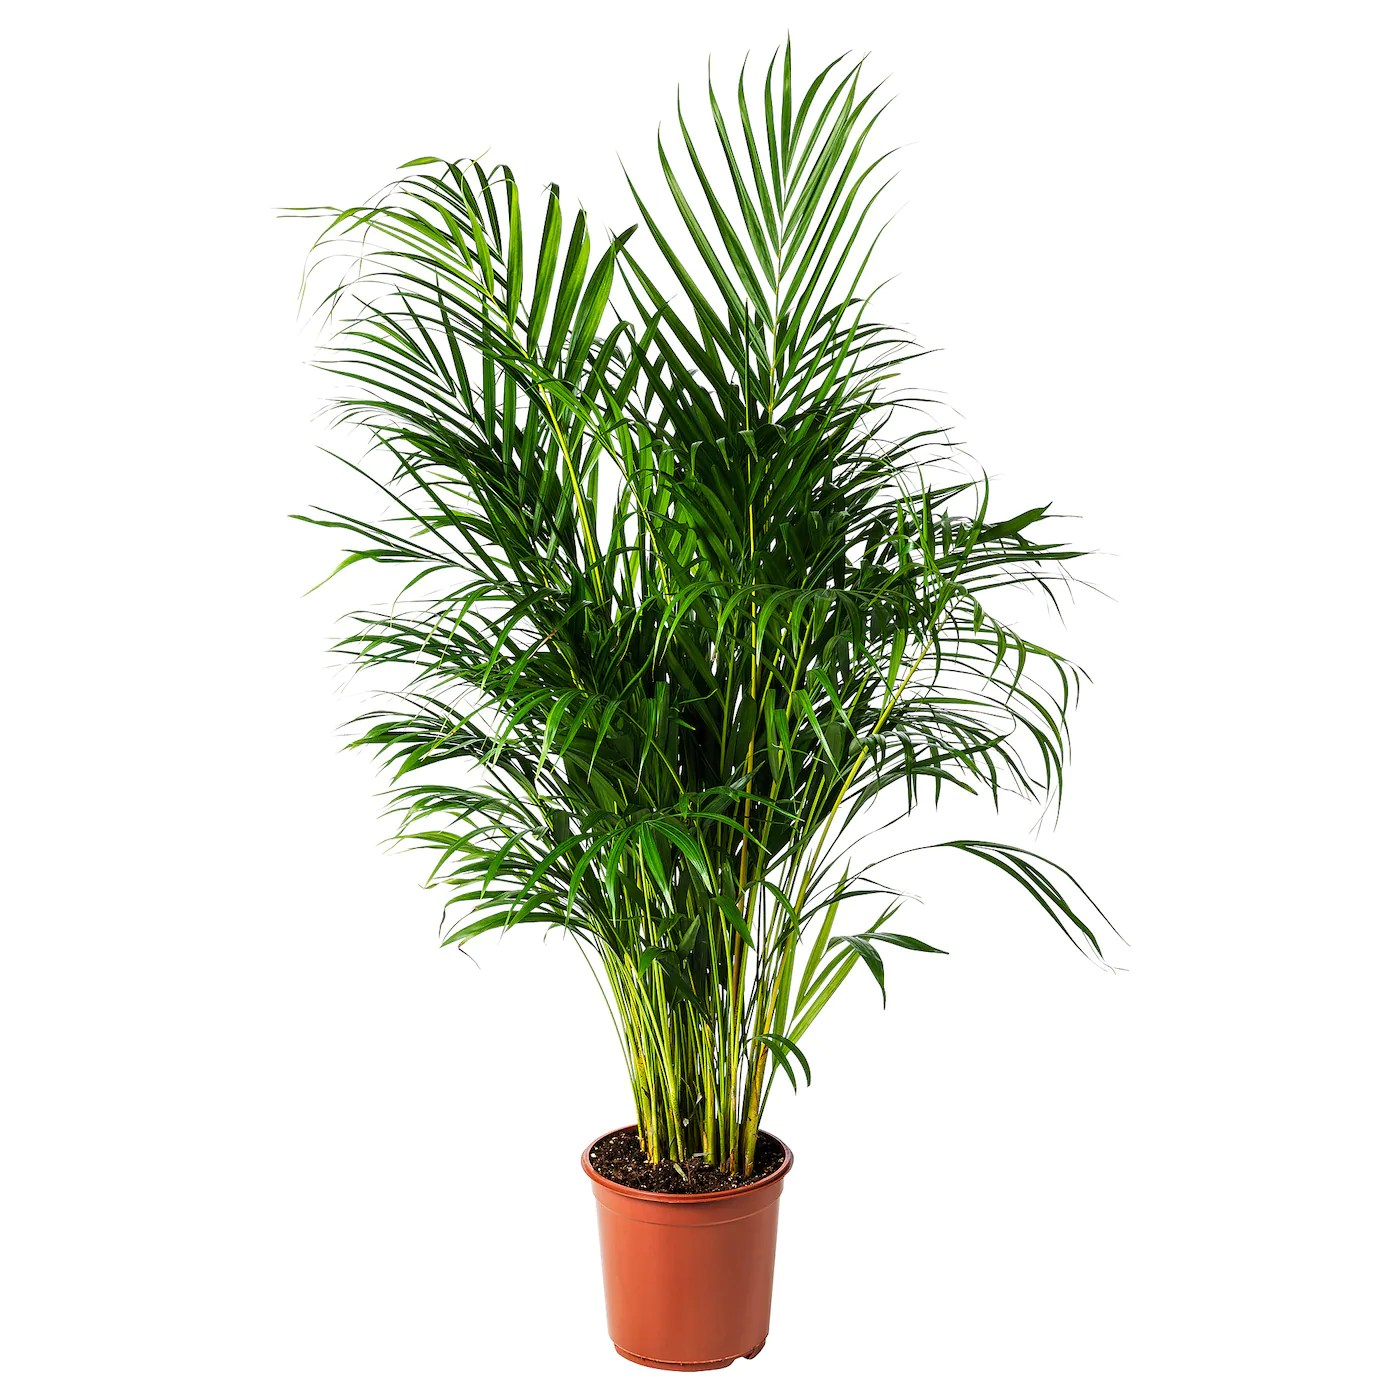 Ikea Palm Tree Dypsis Lutescens Potted Plant Areca Palm